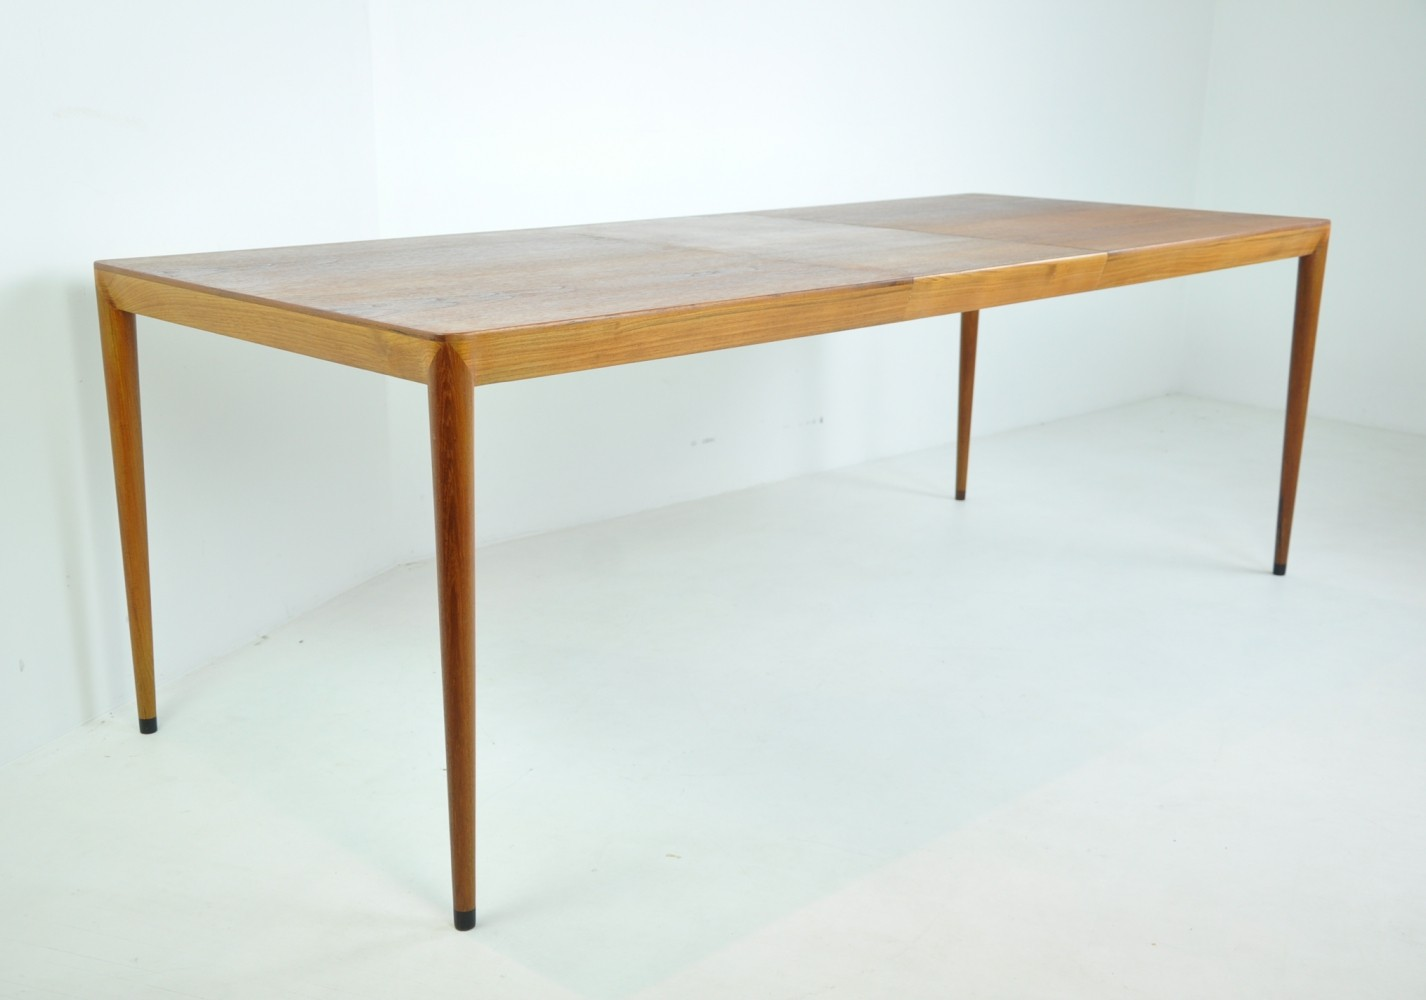 Extendable Dining Table by Erik Riisager Hansen for Haslev, Denmark 1950s